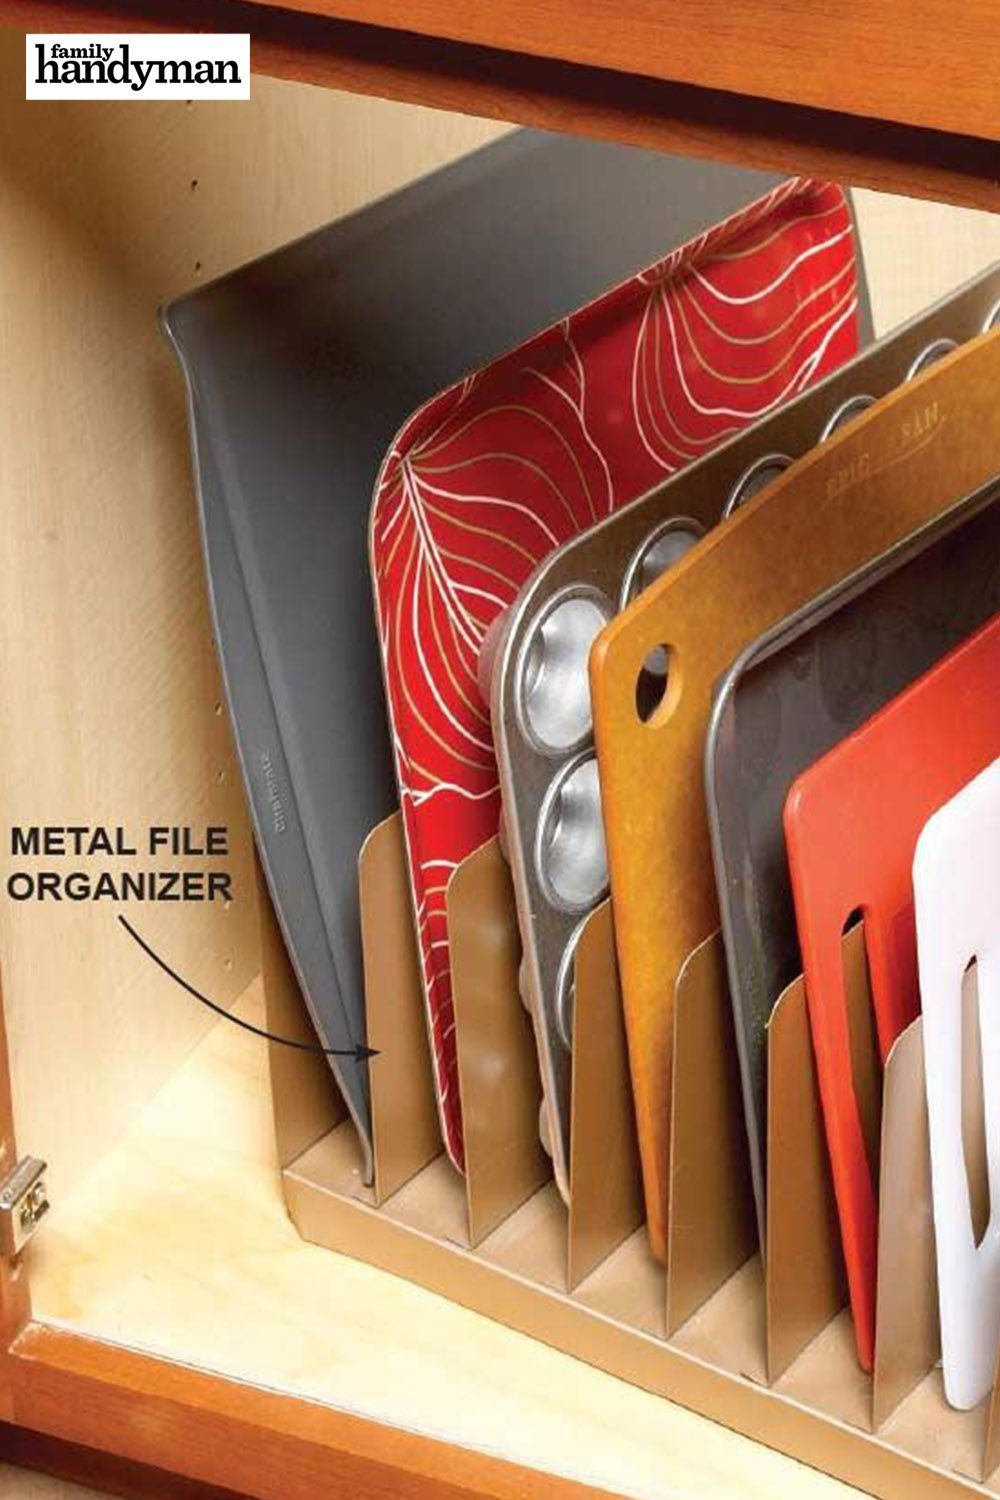 Why Didn't I Think of That? organization